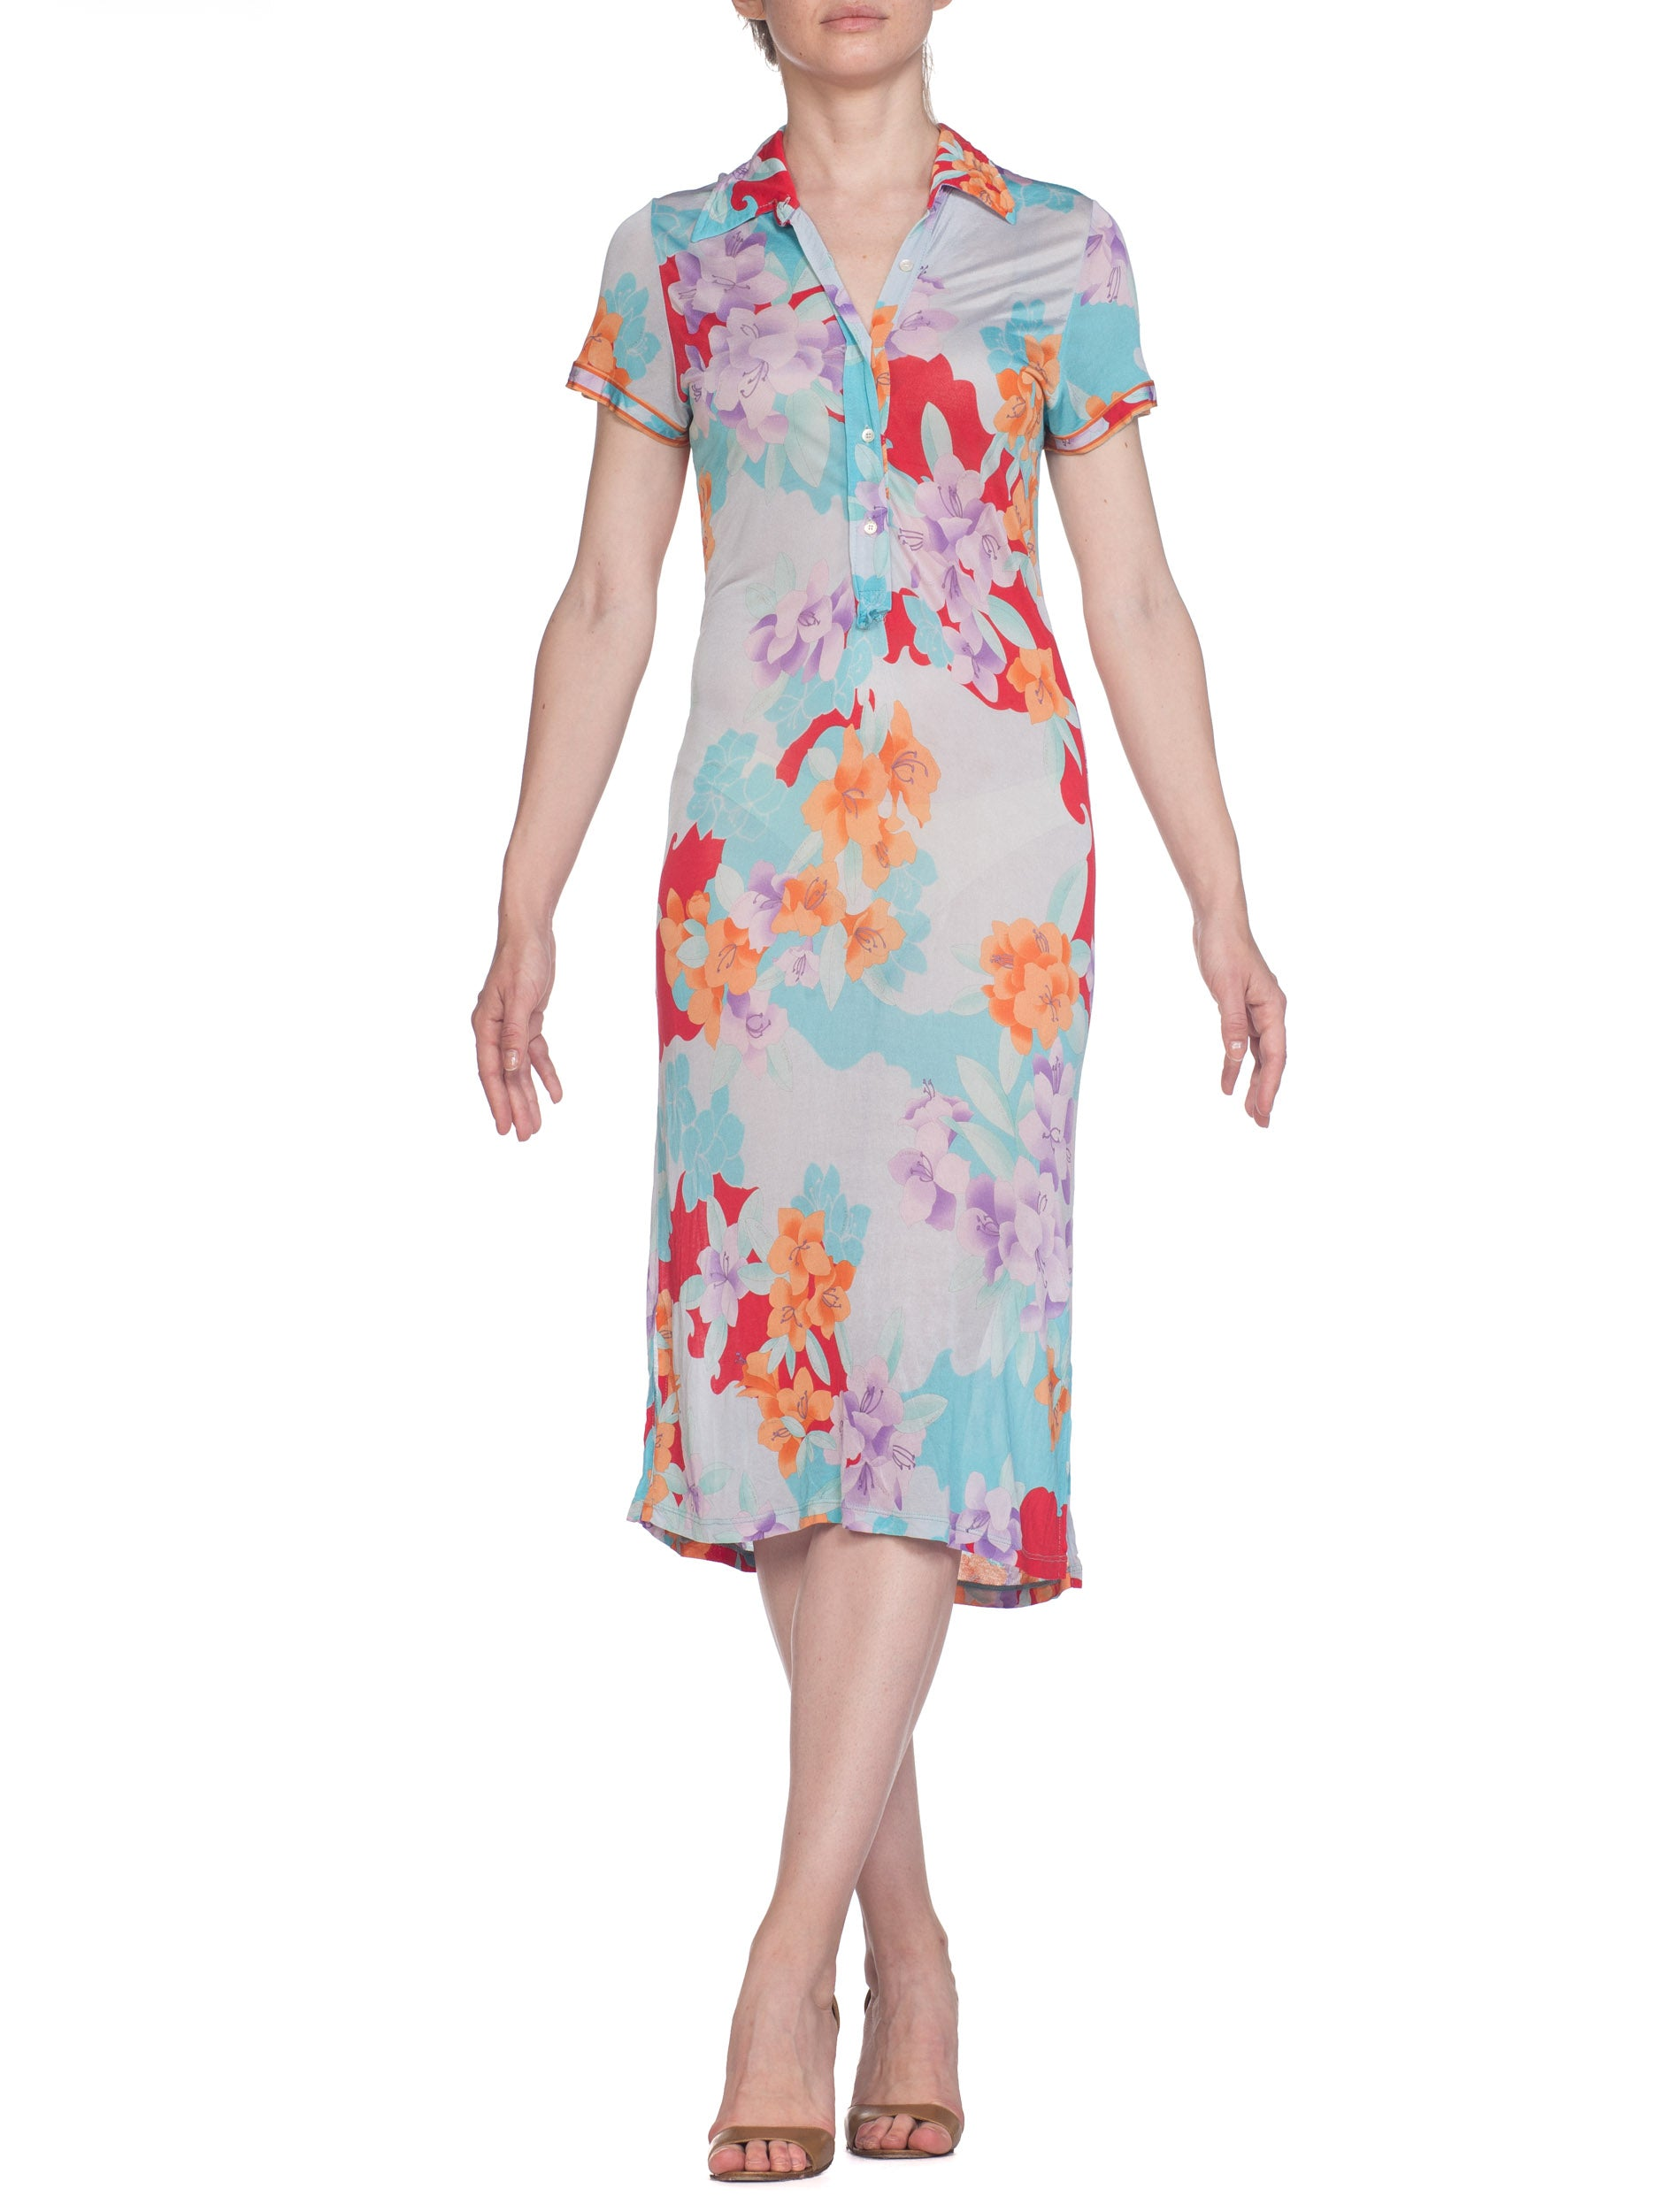 1980S LEONARD Pastel Sheer Rayon Blend Jersey Tropical Floral Print Dress